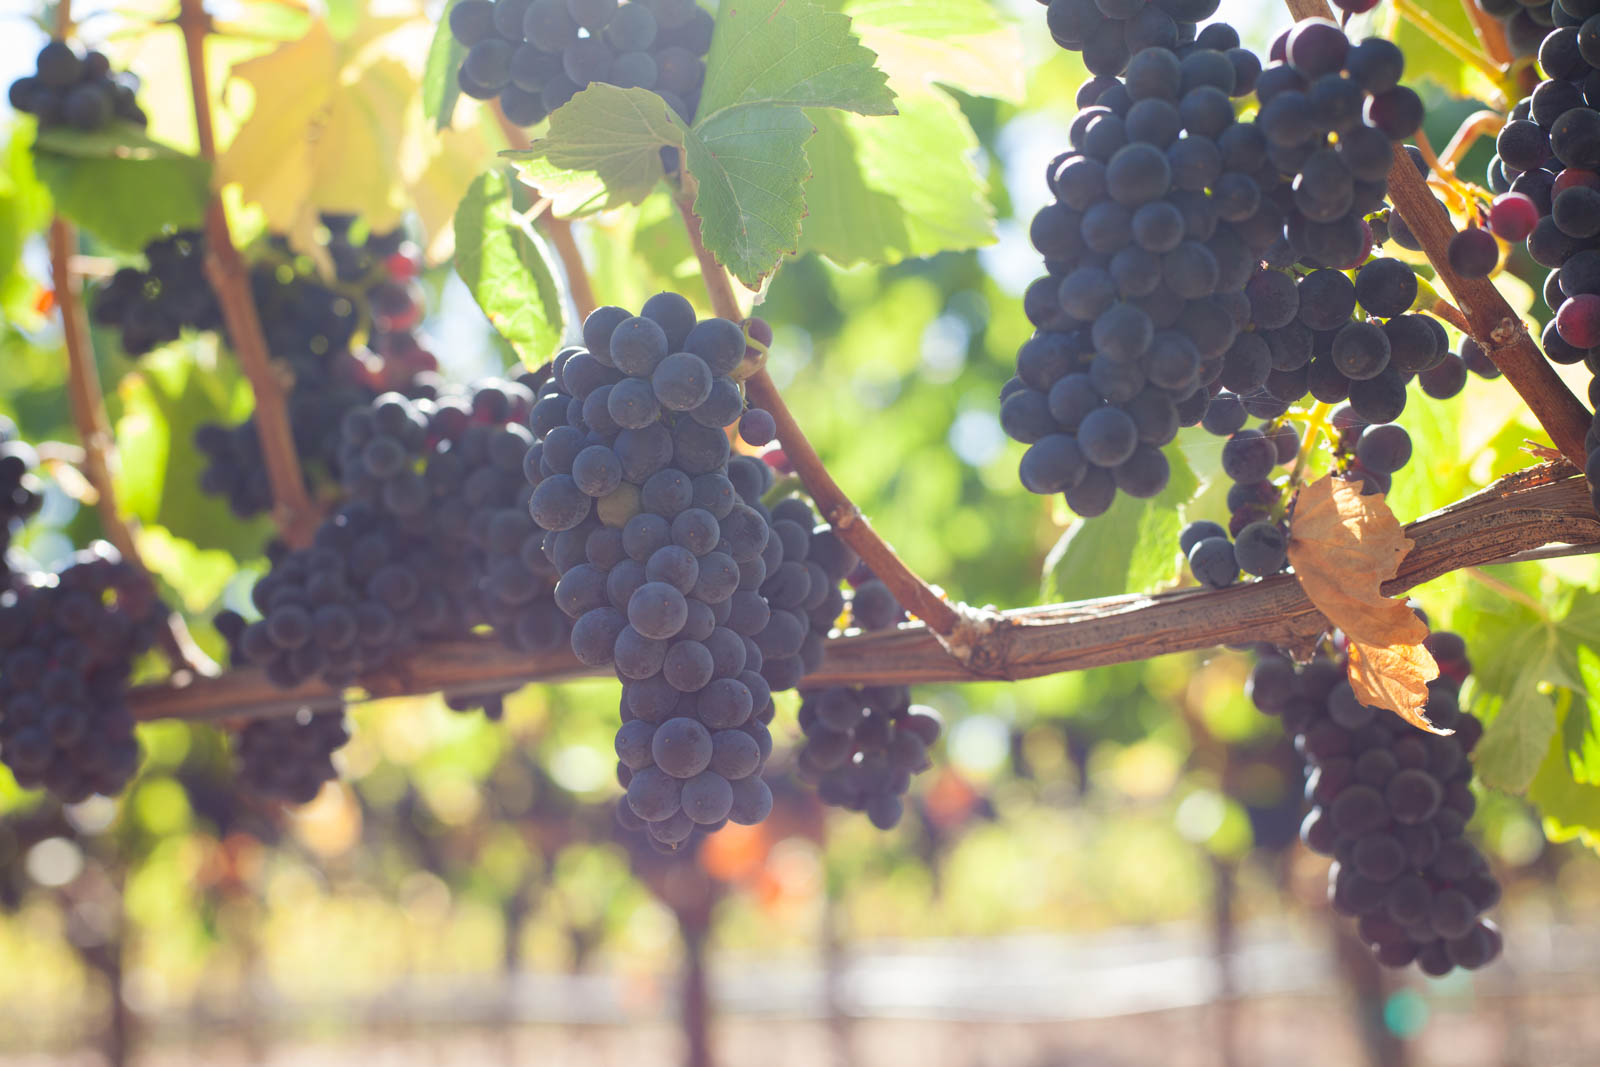 Pinot Noir grapes ripen up in the afternoon sun at Arista Winery. ©Kevin Day / Opening a Bottle